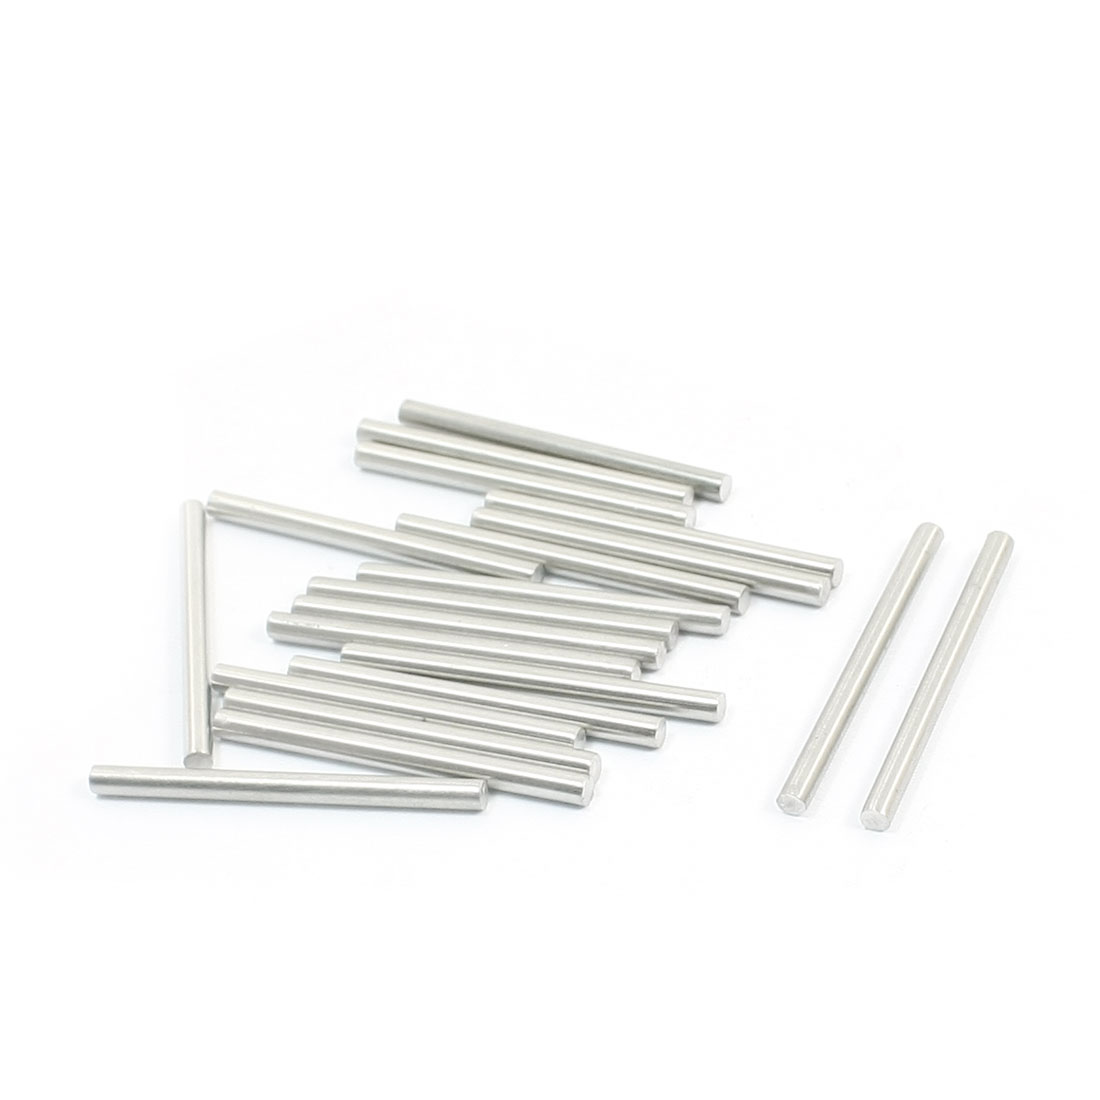 20pcs Stainless Steel Component Parts Round Bar 40mm Long 3mm Dia